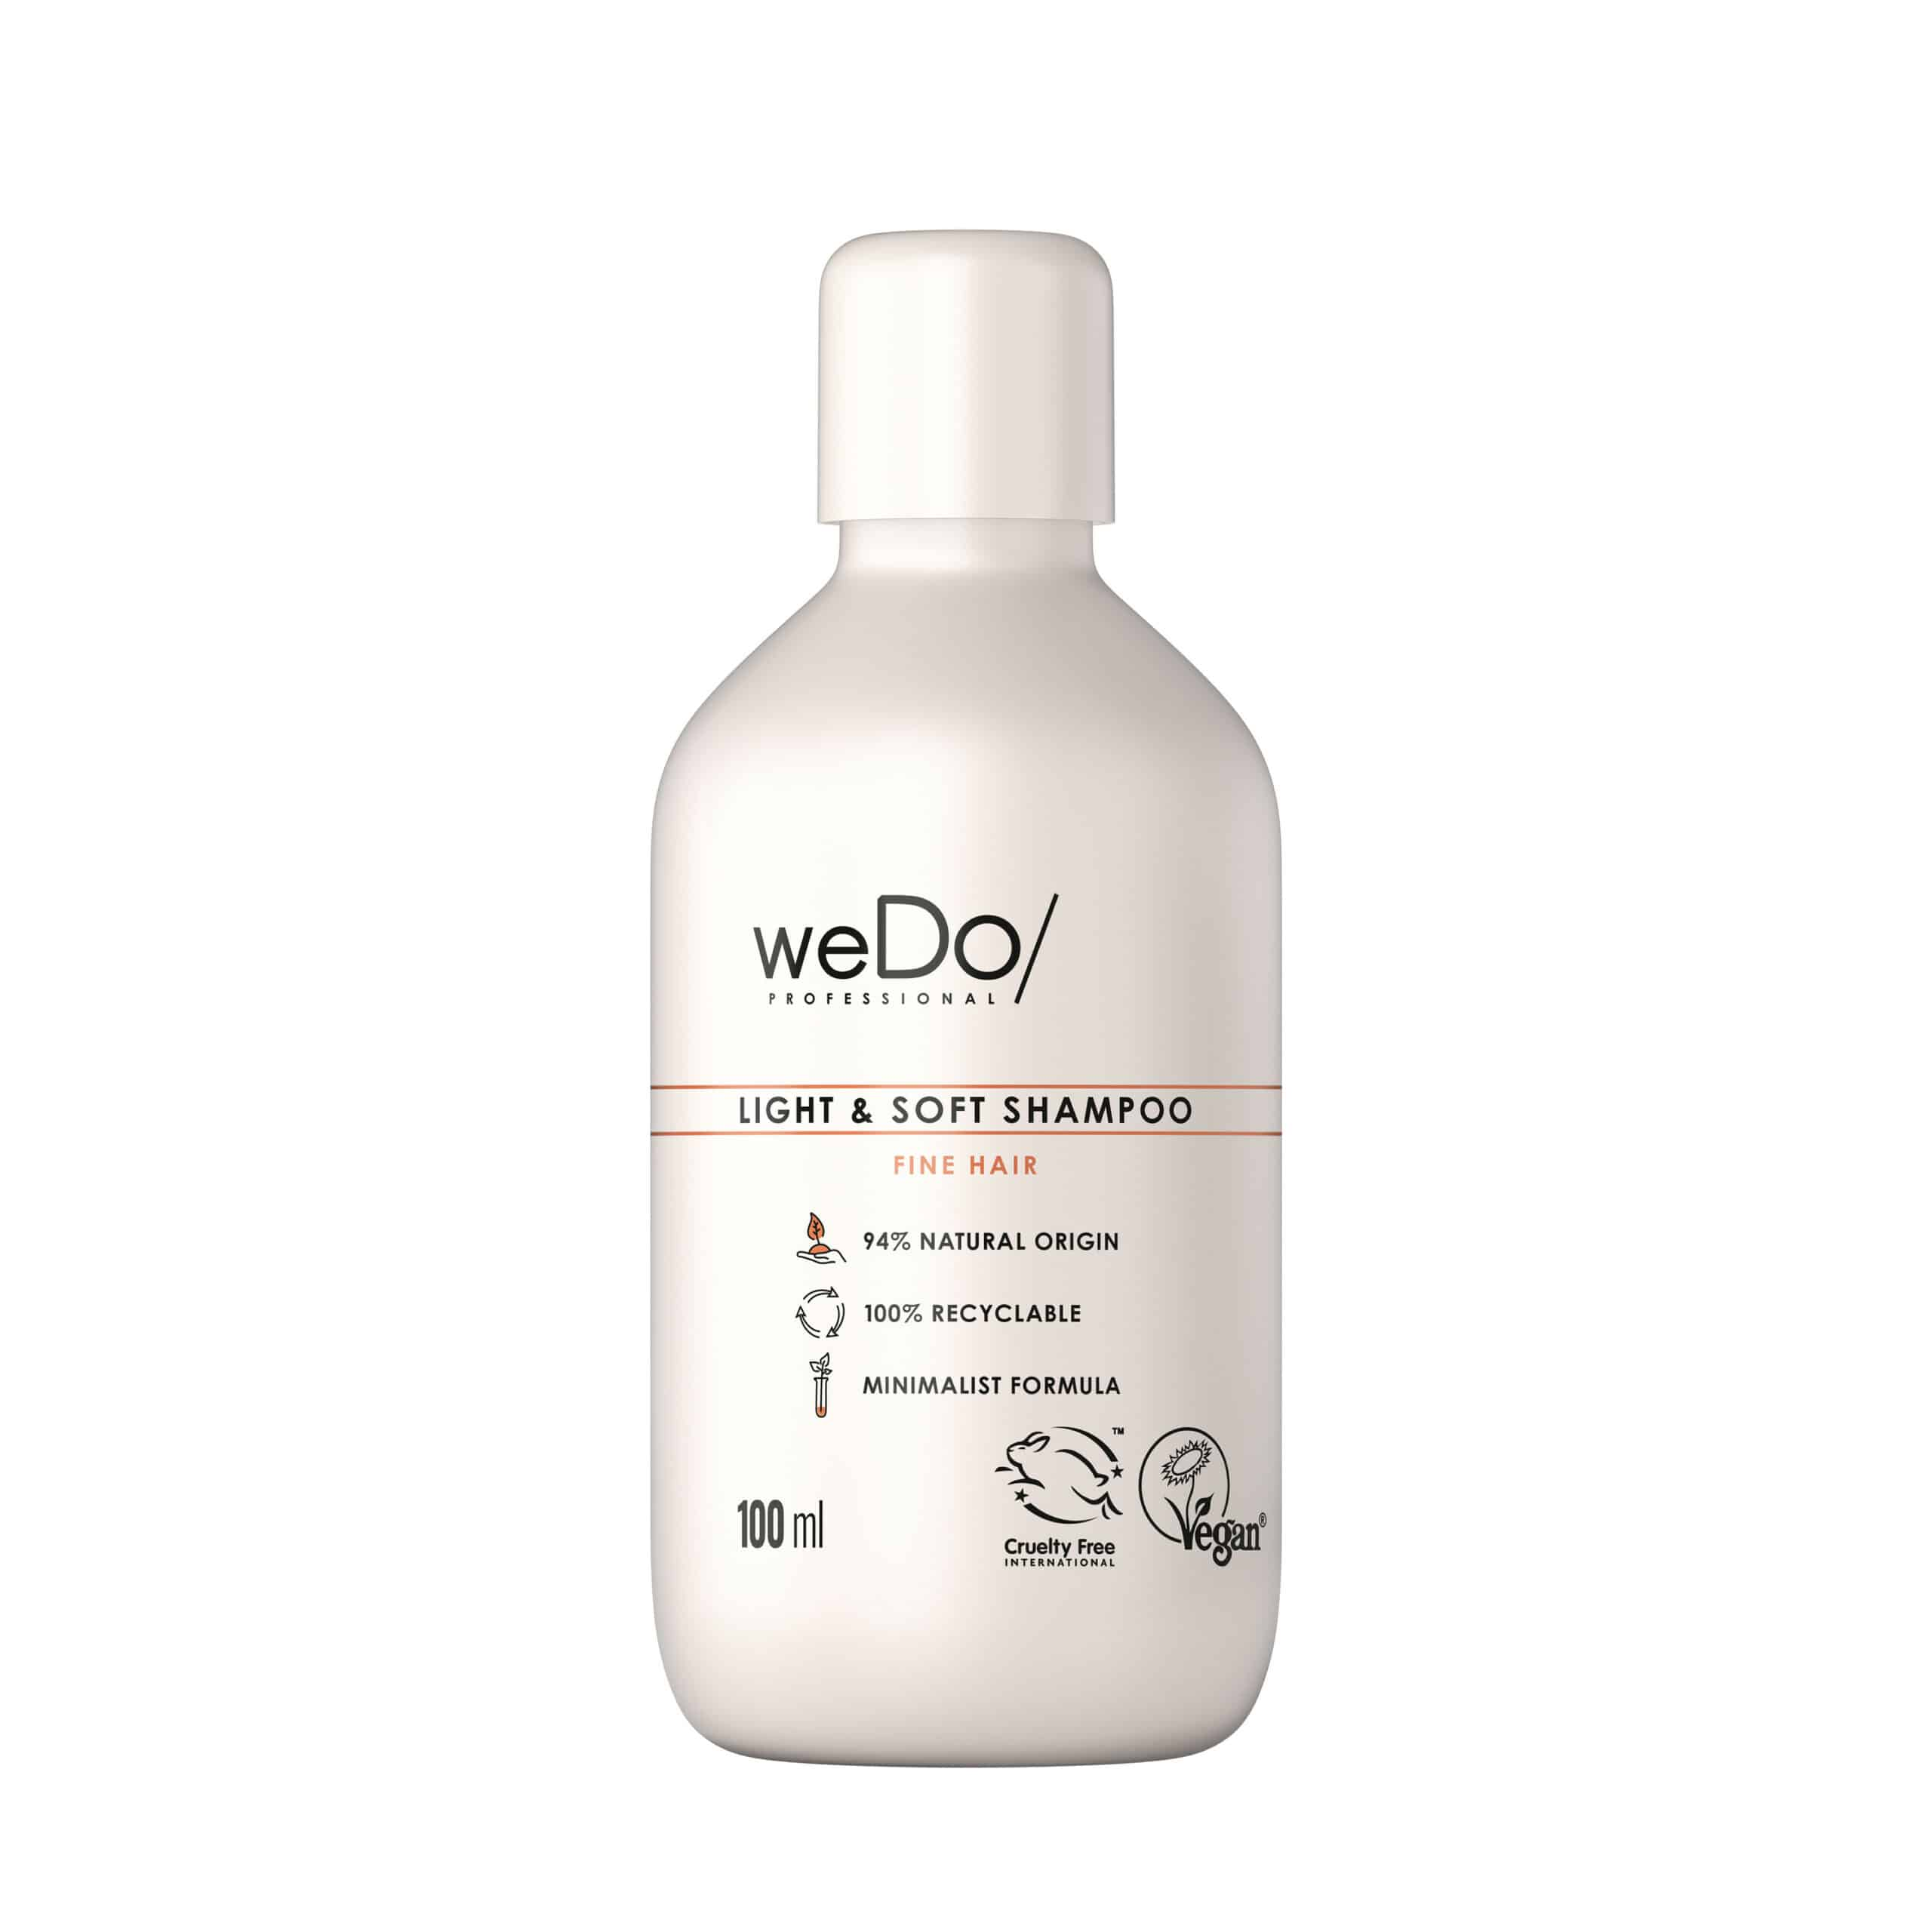 JPG_HighRes-Wedo_Shampoo_100ml_Light-Soft_3614229705034_8001-scalato